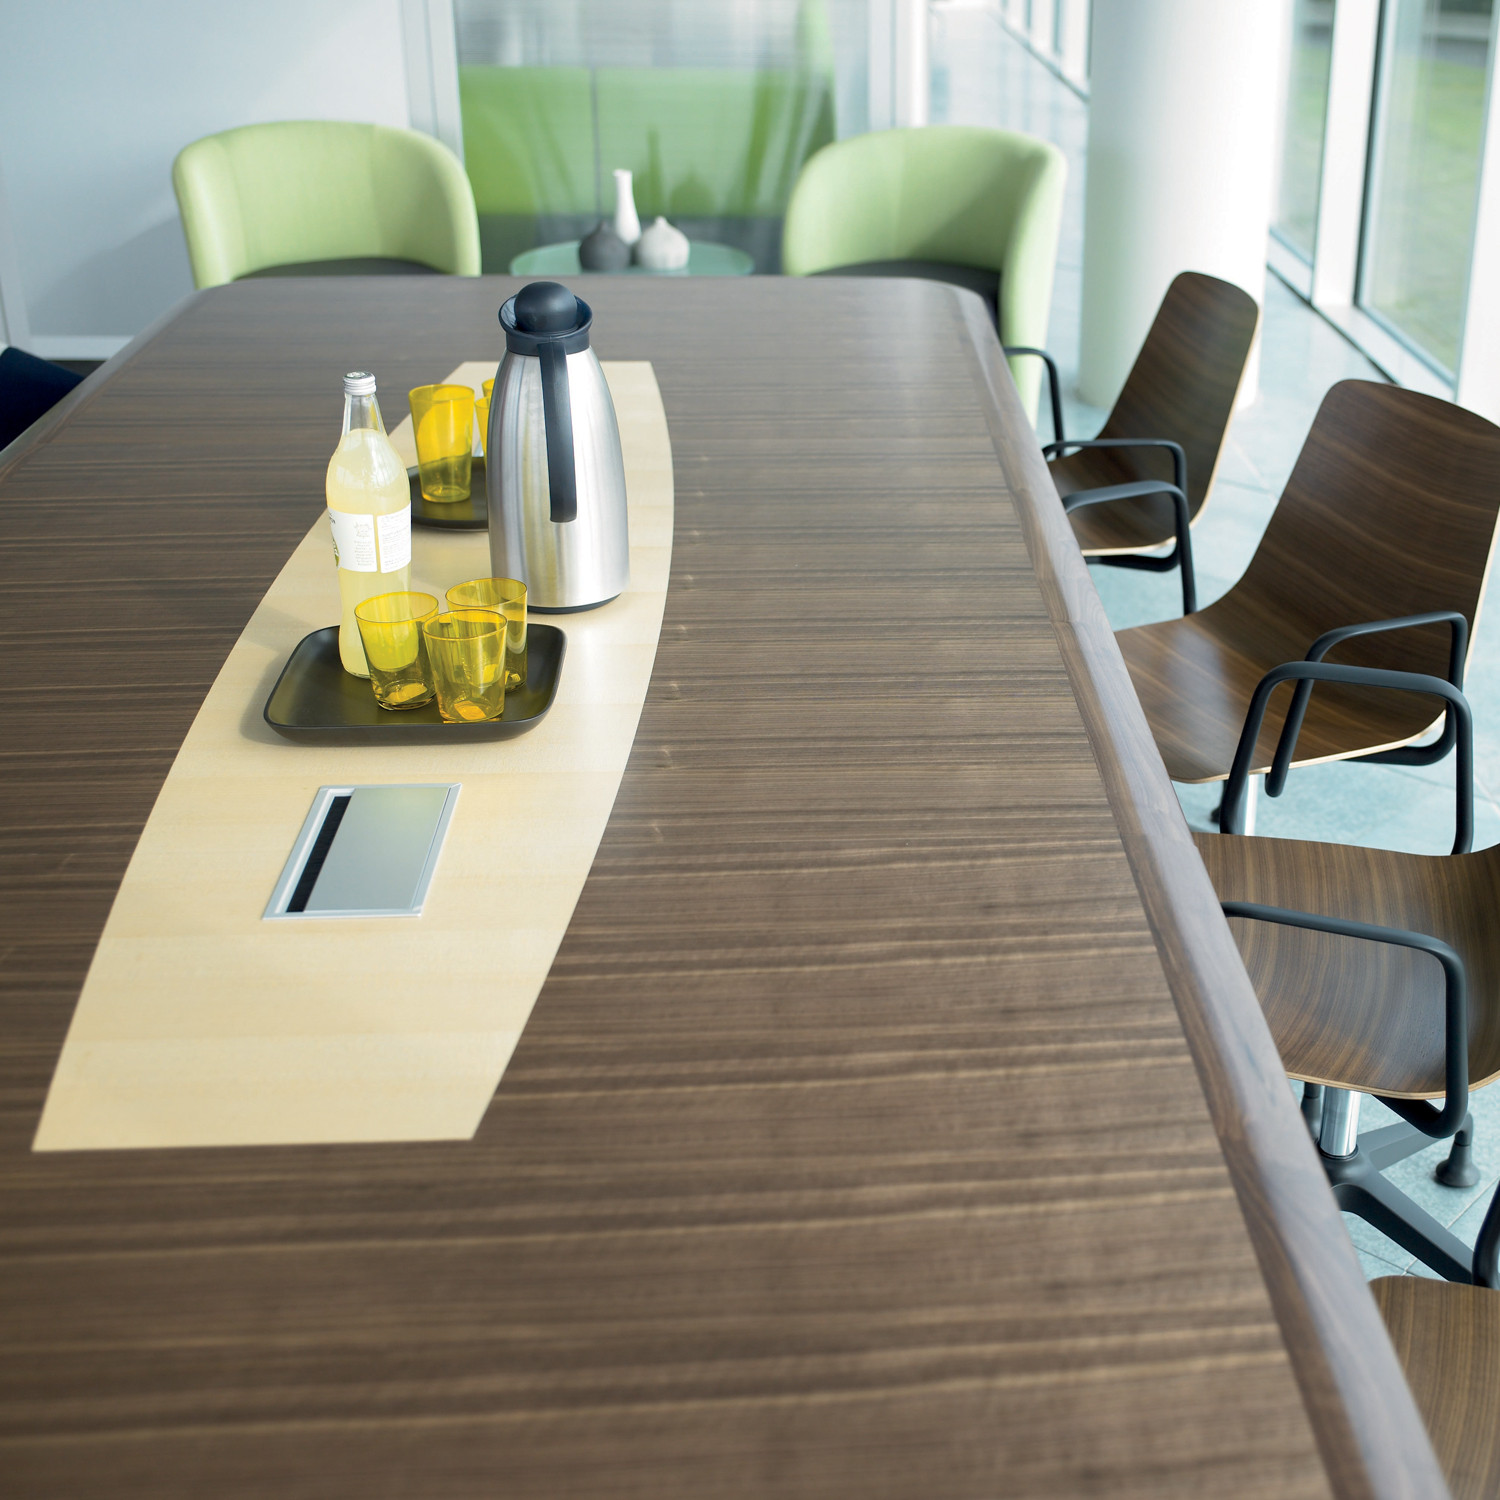 Pars Meeting Table